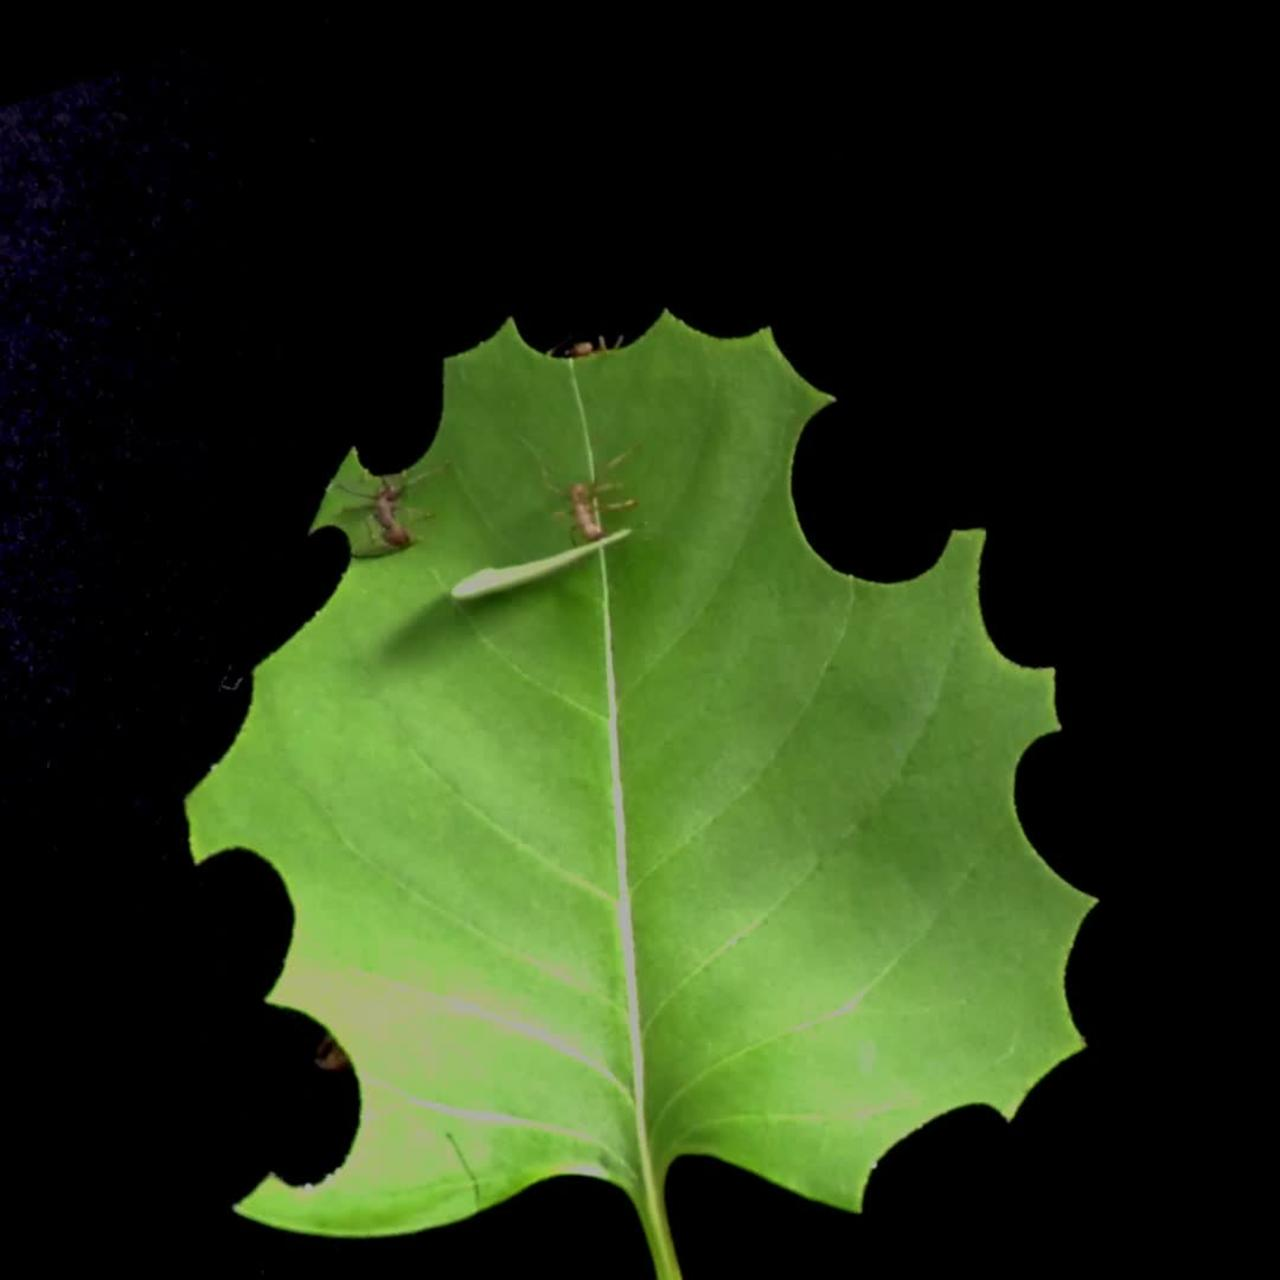 Time lapse shows how effective leafcutter ants can be